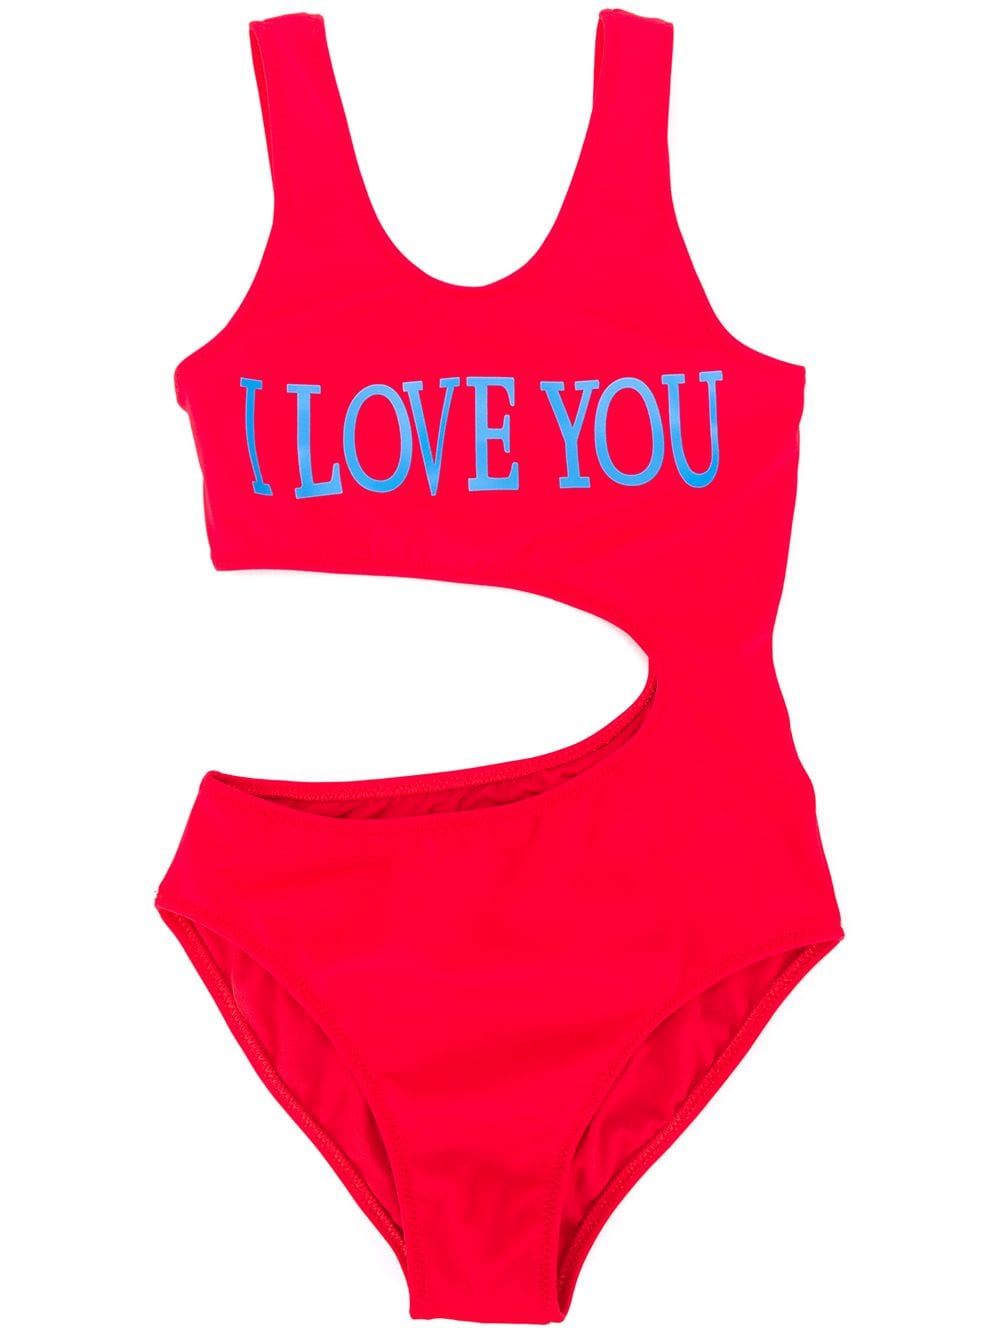 ALBERTA FERRETTI JUNIOR I love you one-piece red swimsuit